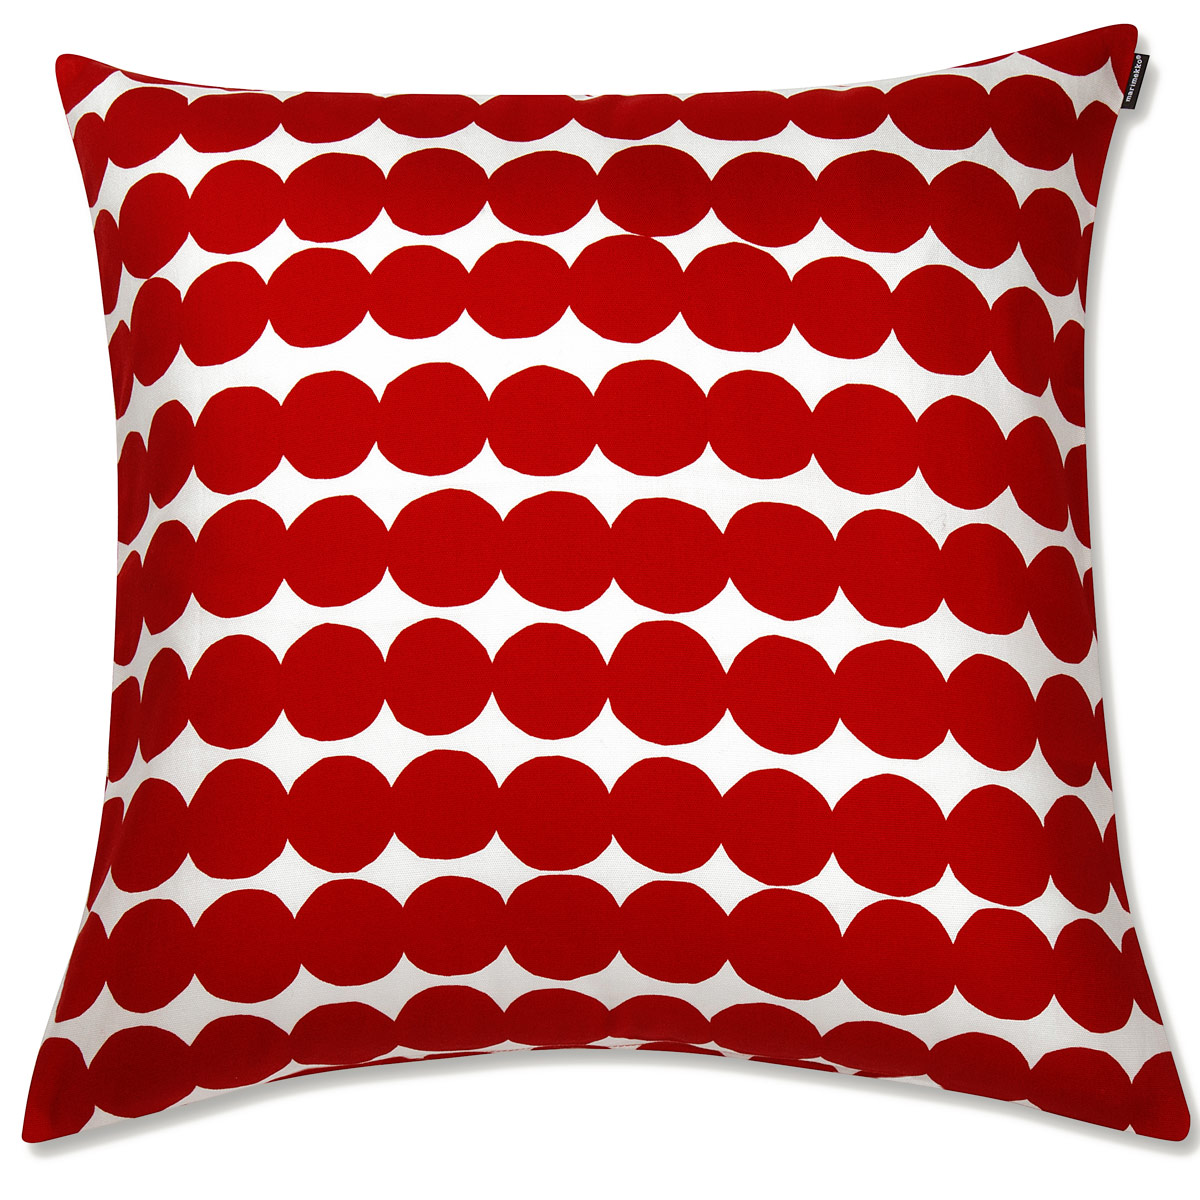 multiple satin products colors new pillow size original silky red queen case standard